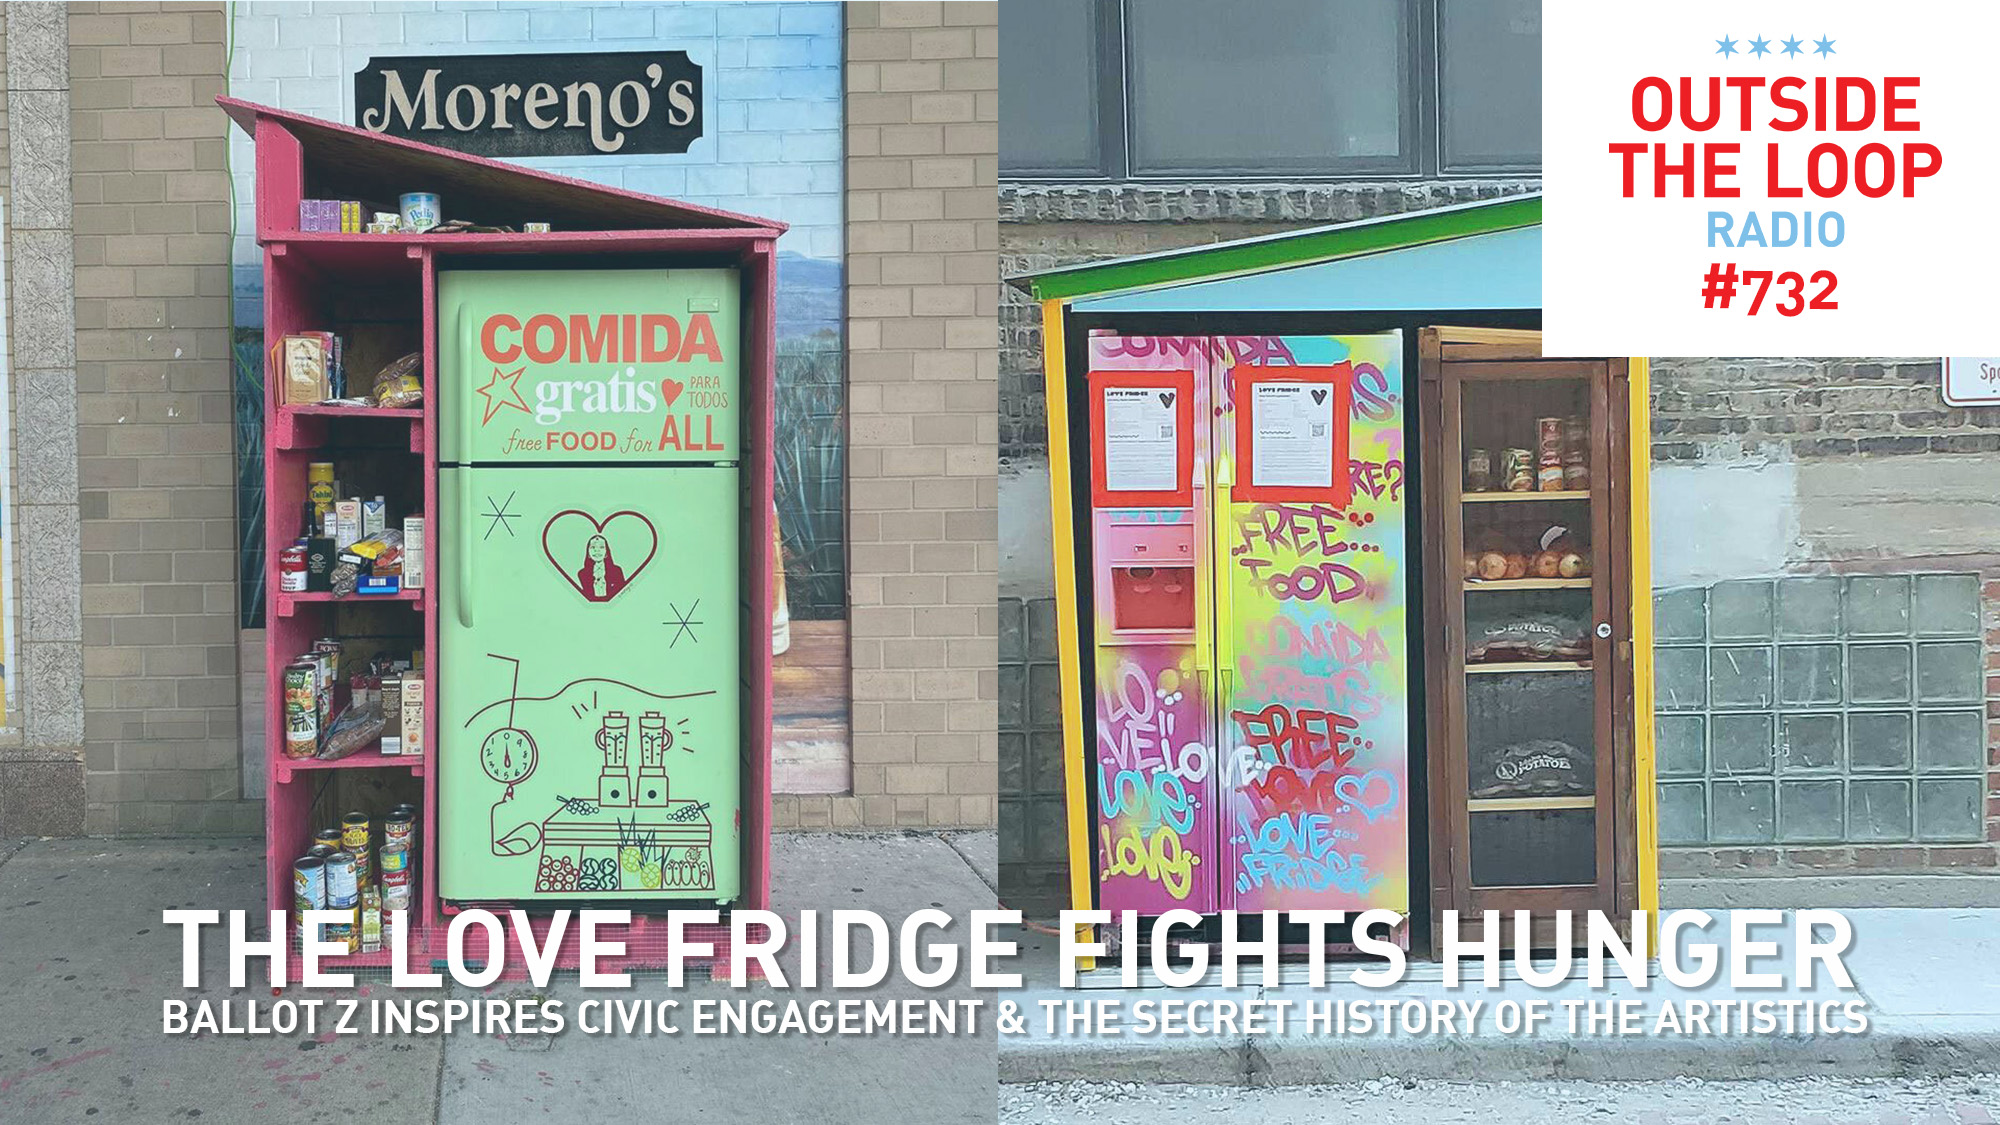 The Love Fridge lends a helping hand in Chicago neighborhoods.